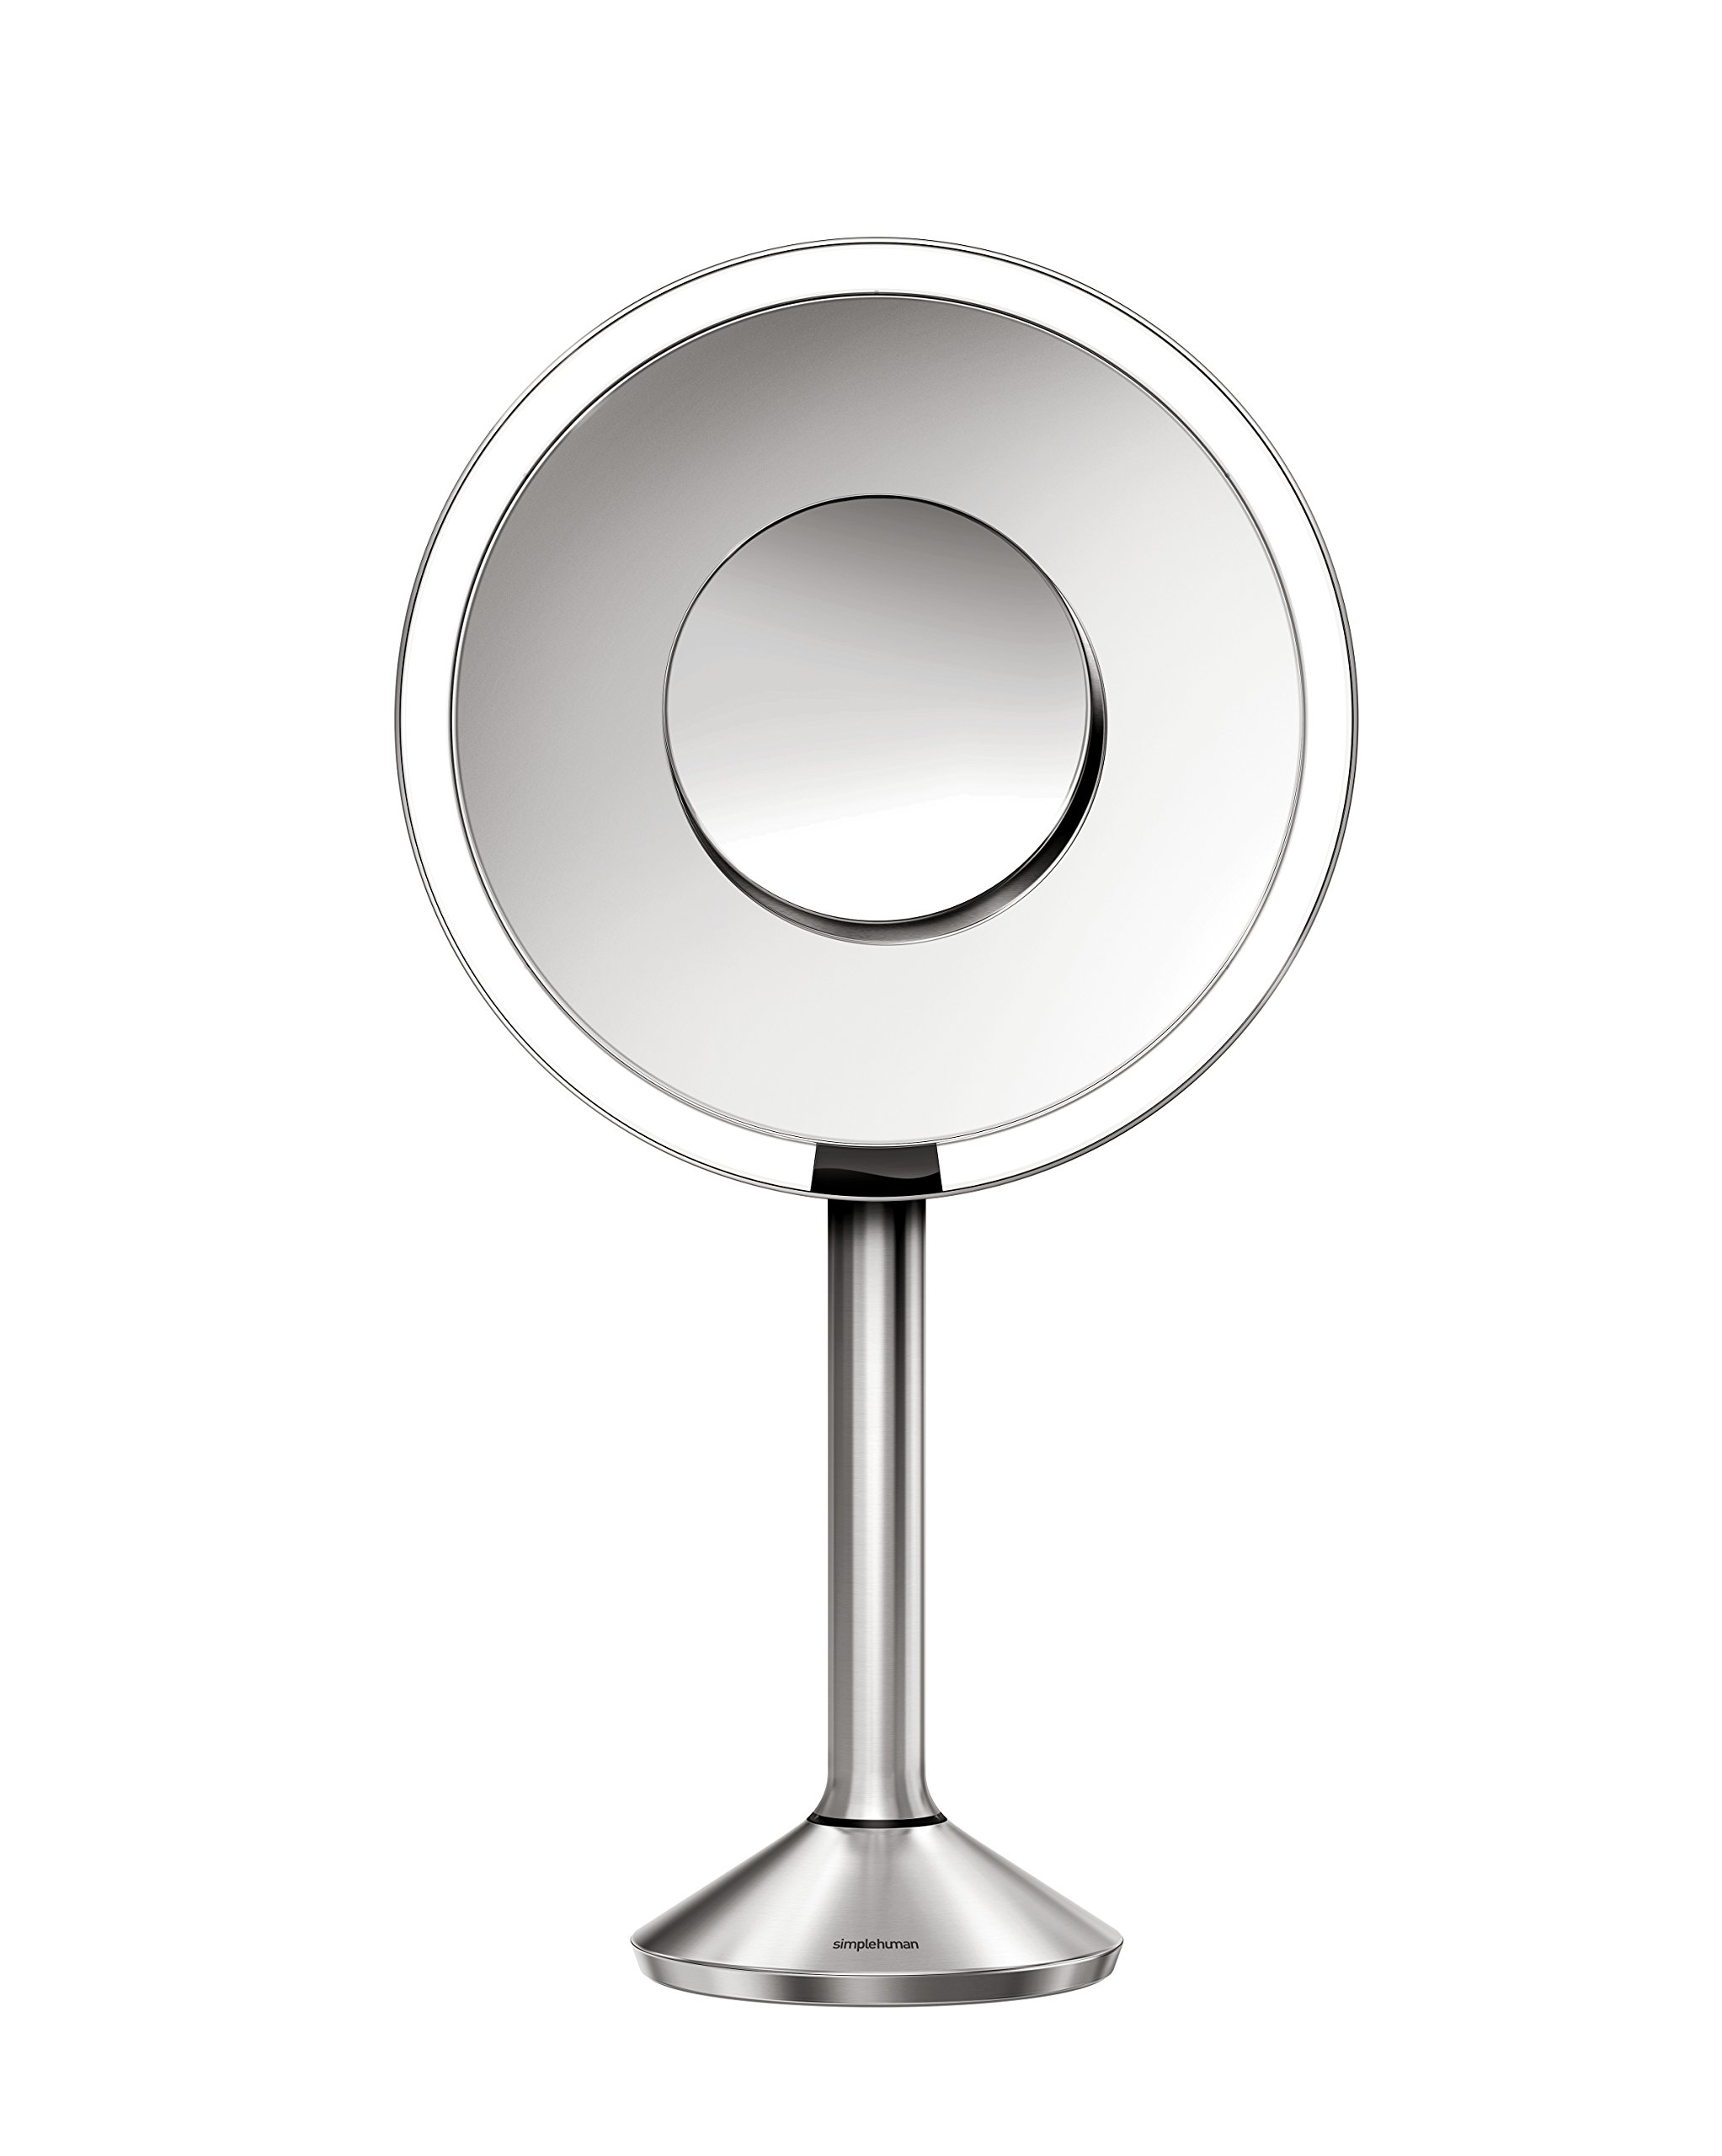 simplehuman Sensor Lighted Makeup Vanity Mirror Pro 8'' Round, 5x + 10x Dual Magnification, Rose Gold Stainless Steel, Rechargeable And Cordless